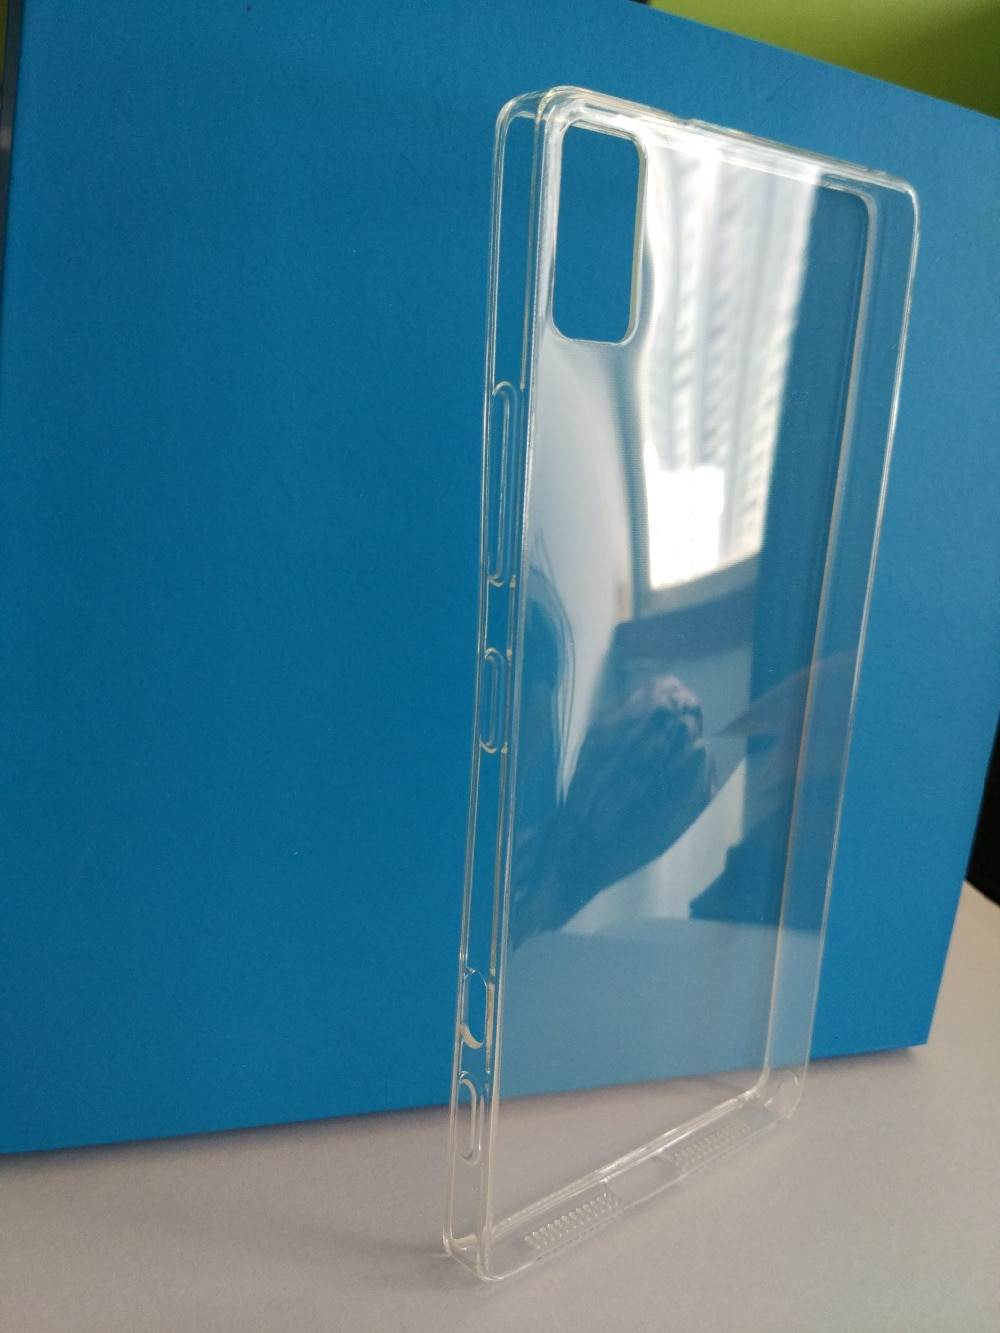 New Ultra Transparent Silicon case Clear soft case For Lenovo Z90-7/ Z90-3 good quality in stock free shipping enlarge